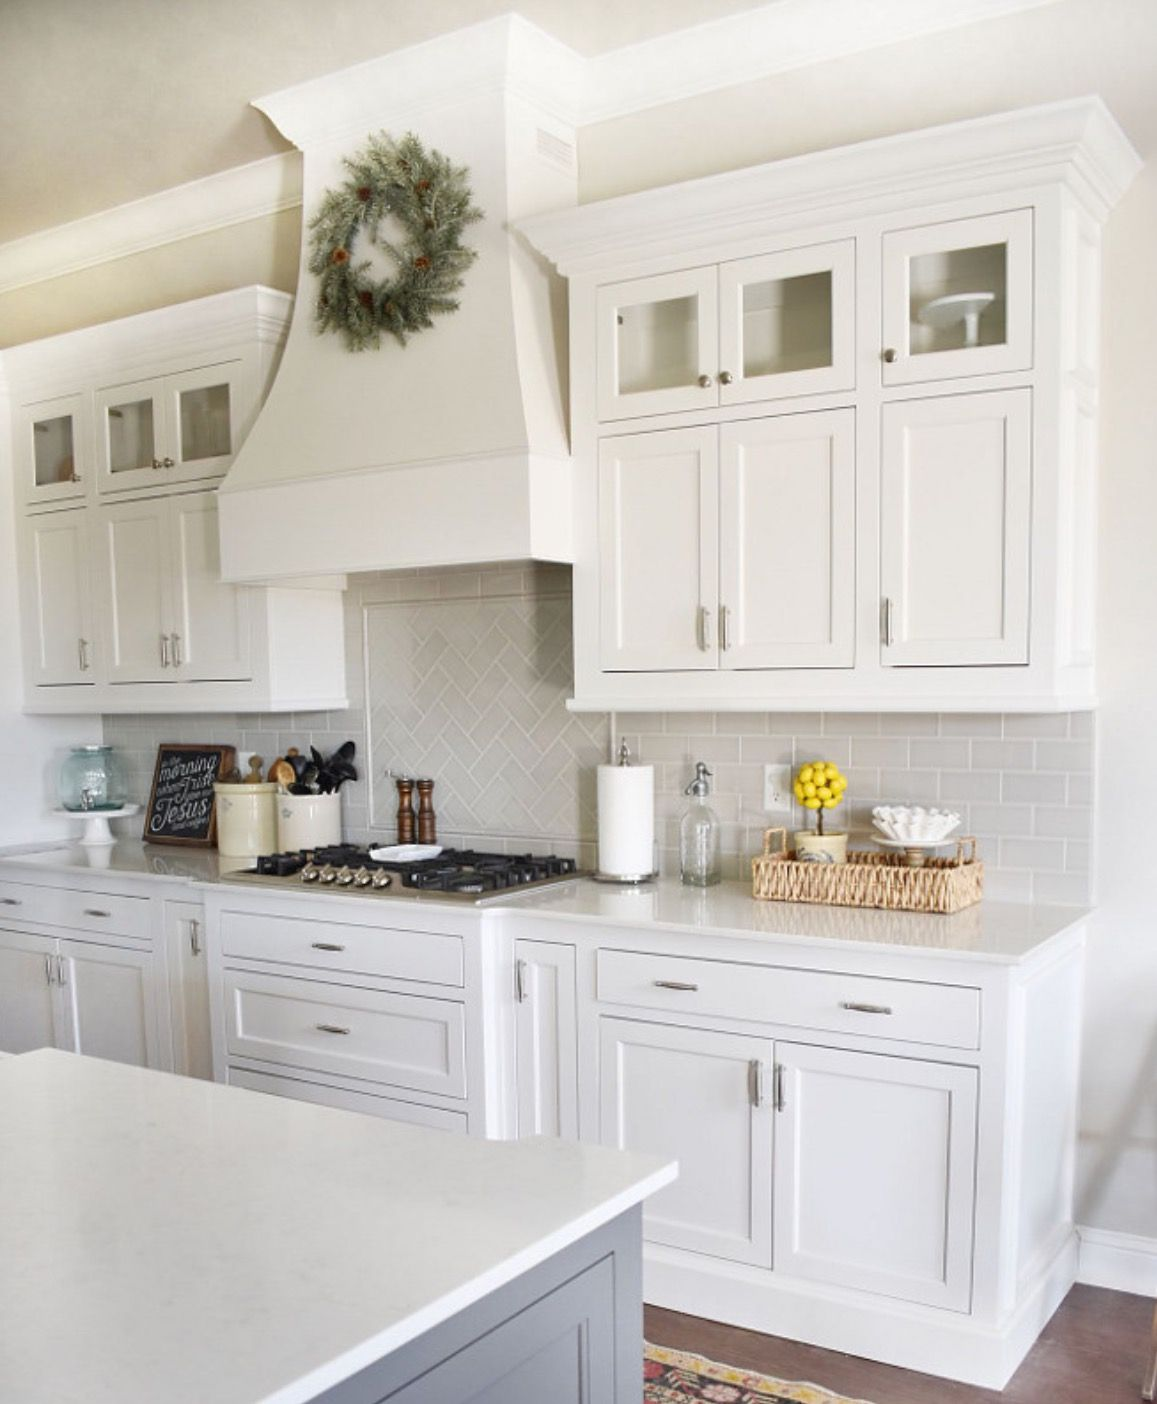 White kitchen with glass inserts in upper cabinets - 10x10 kitchen designs with island ...